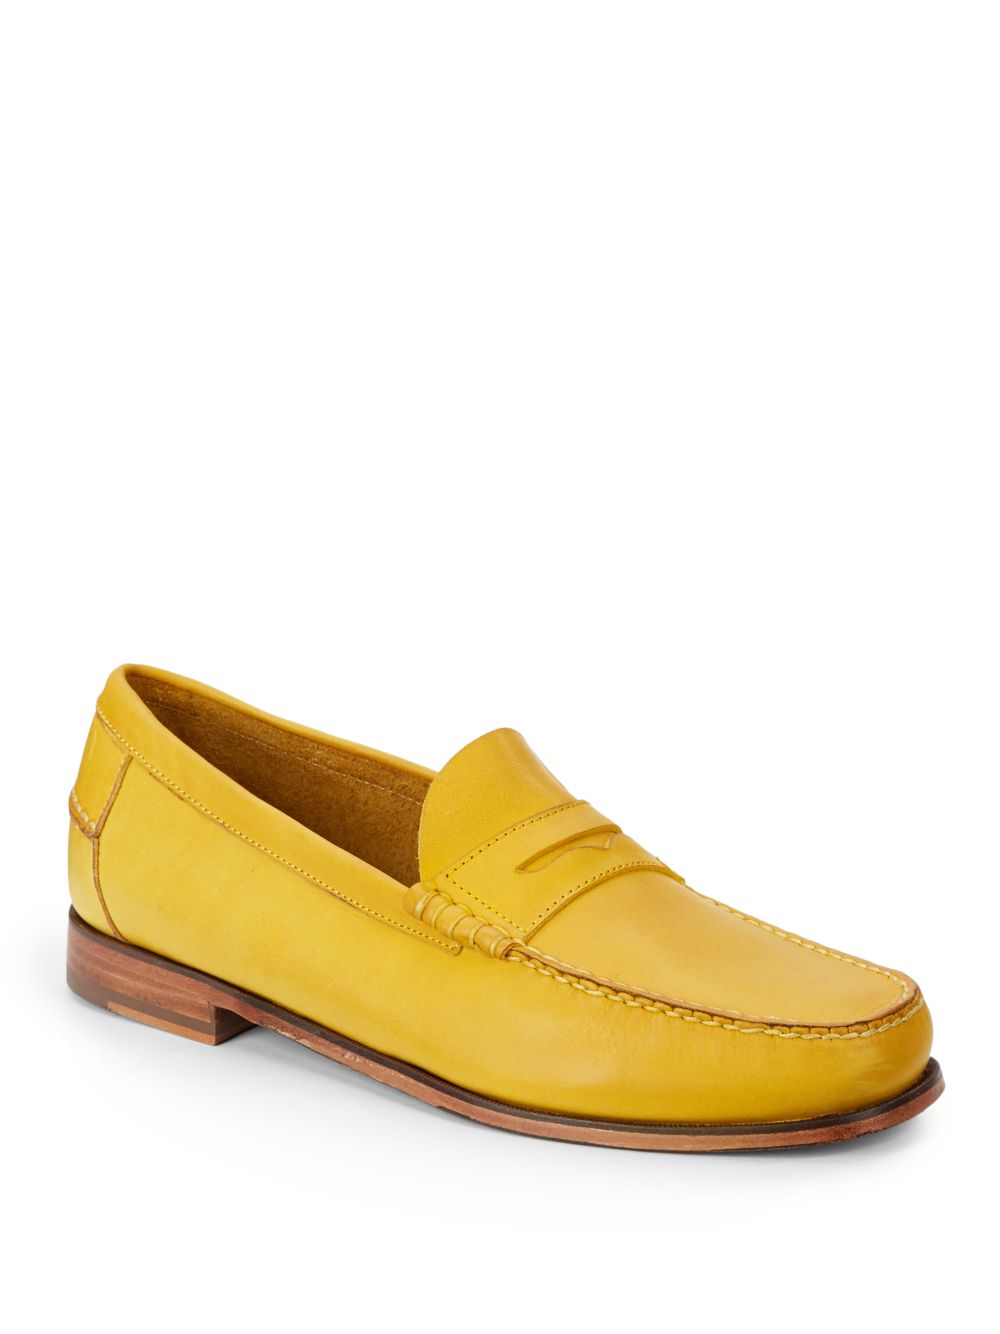 Lyst - Florsheim By Duckie Brown Leather Penny Loafers in ...